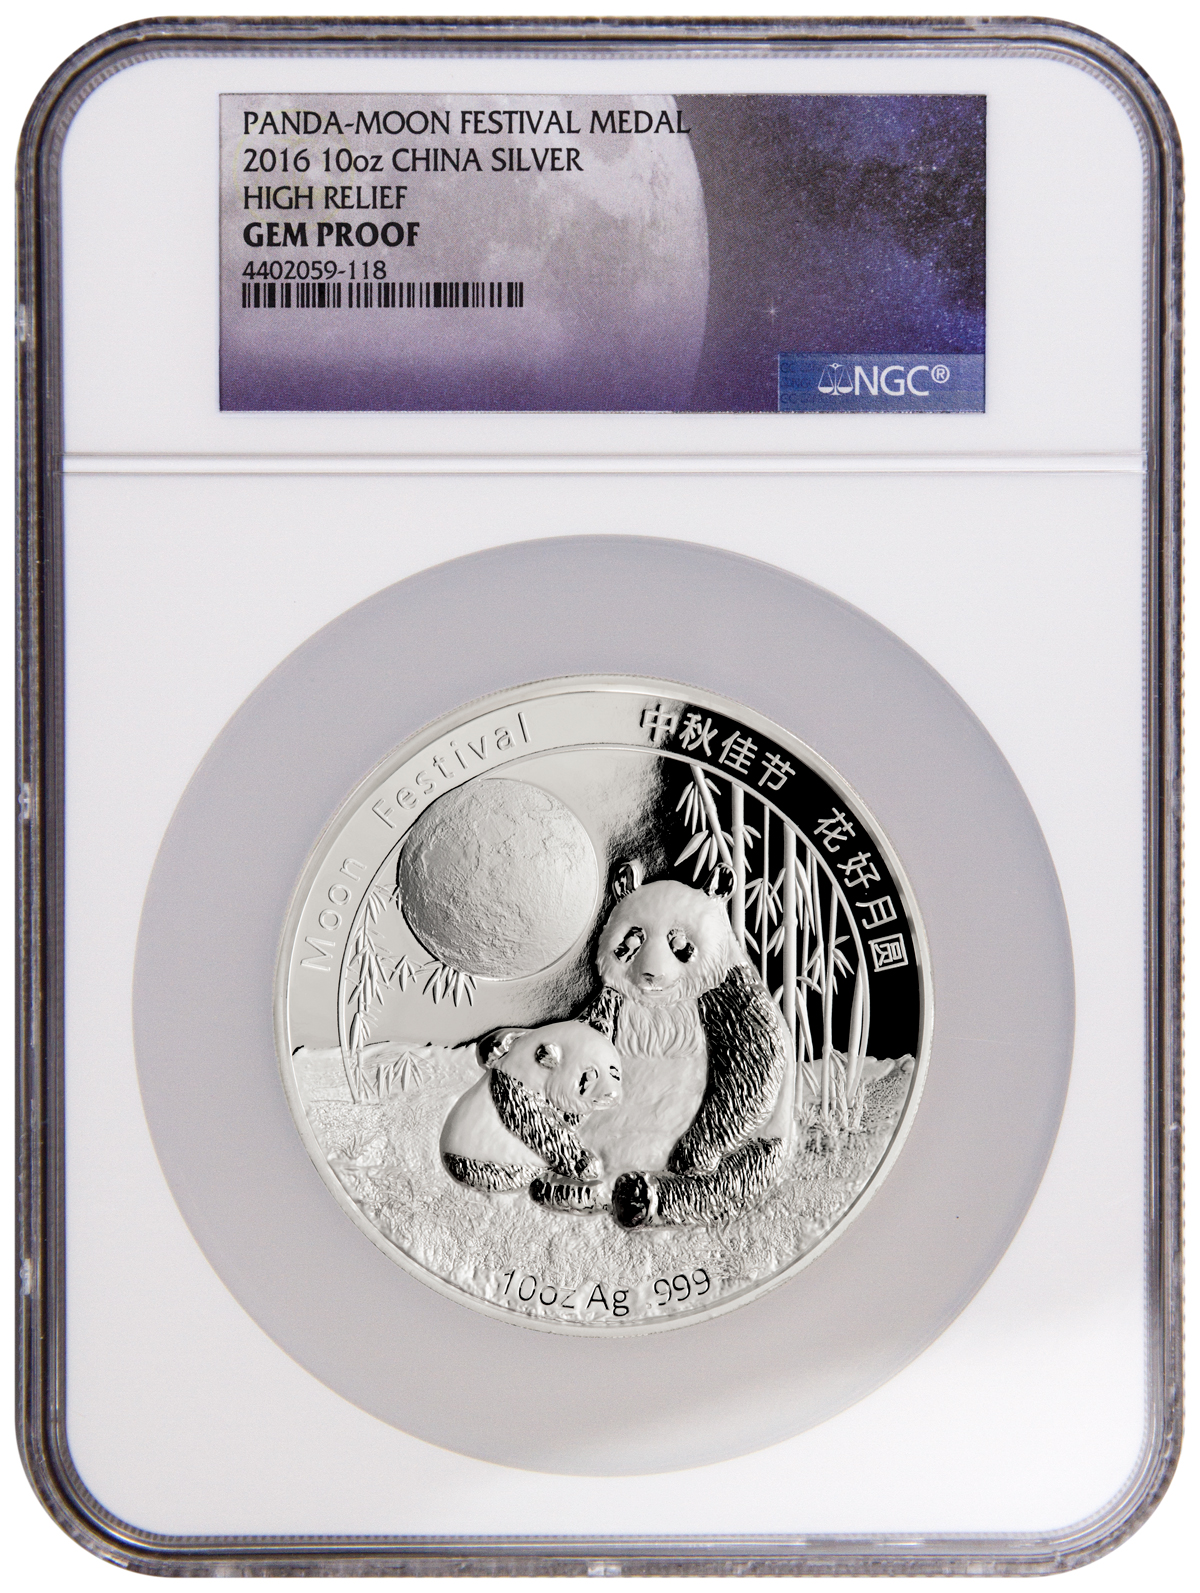 2016 China Moon Festival Silver Panda High Relief 10 oz Proof Medal NGC GEM Proof